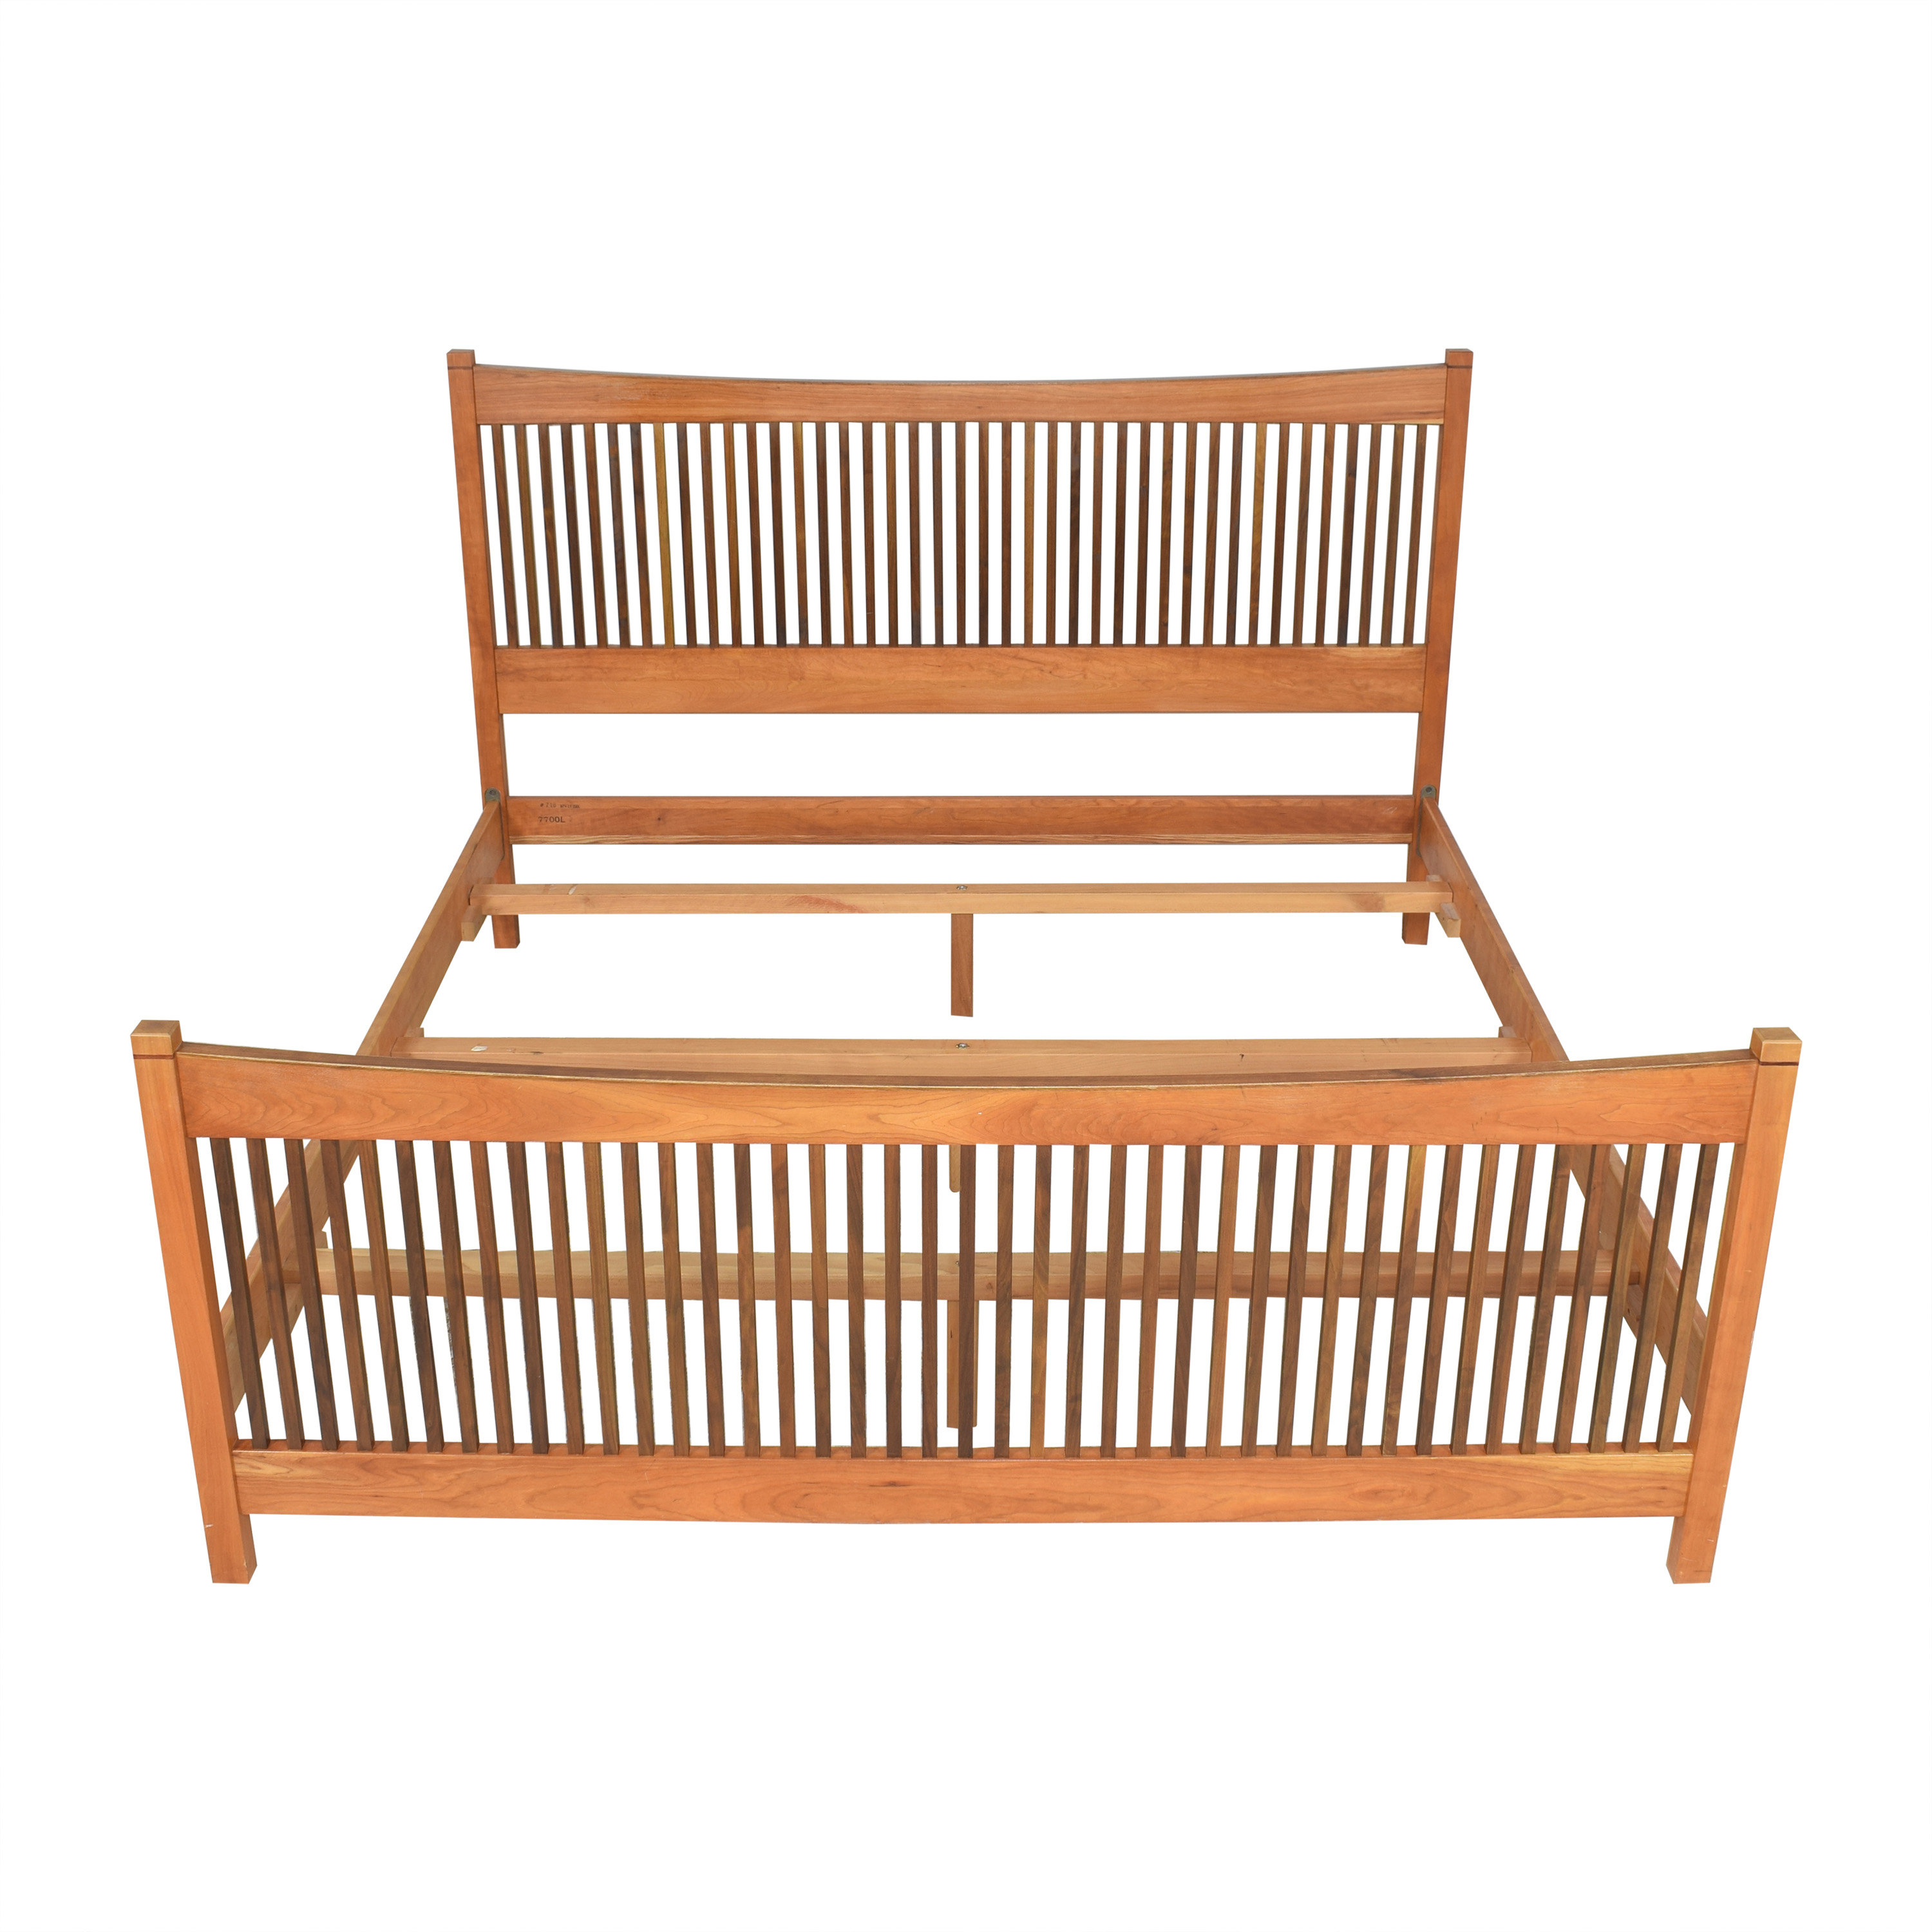 buy Stickley Furniture Stickley Furniture Metropolitan Spindle King Bed online